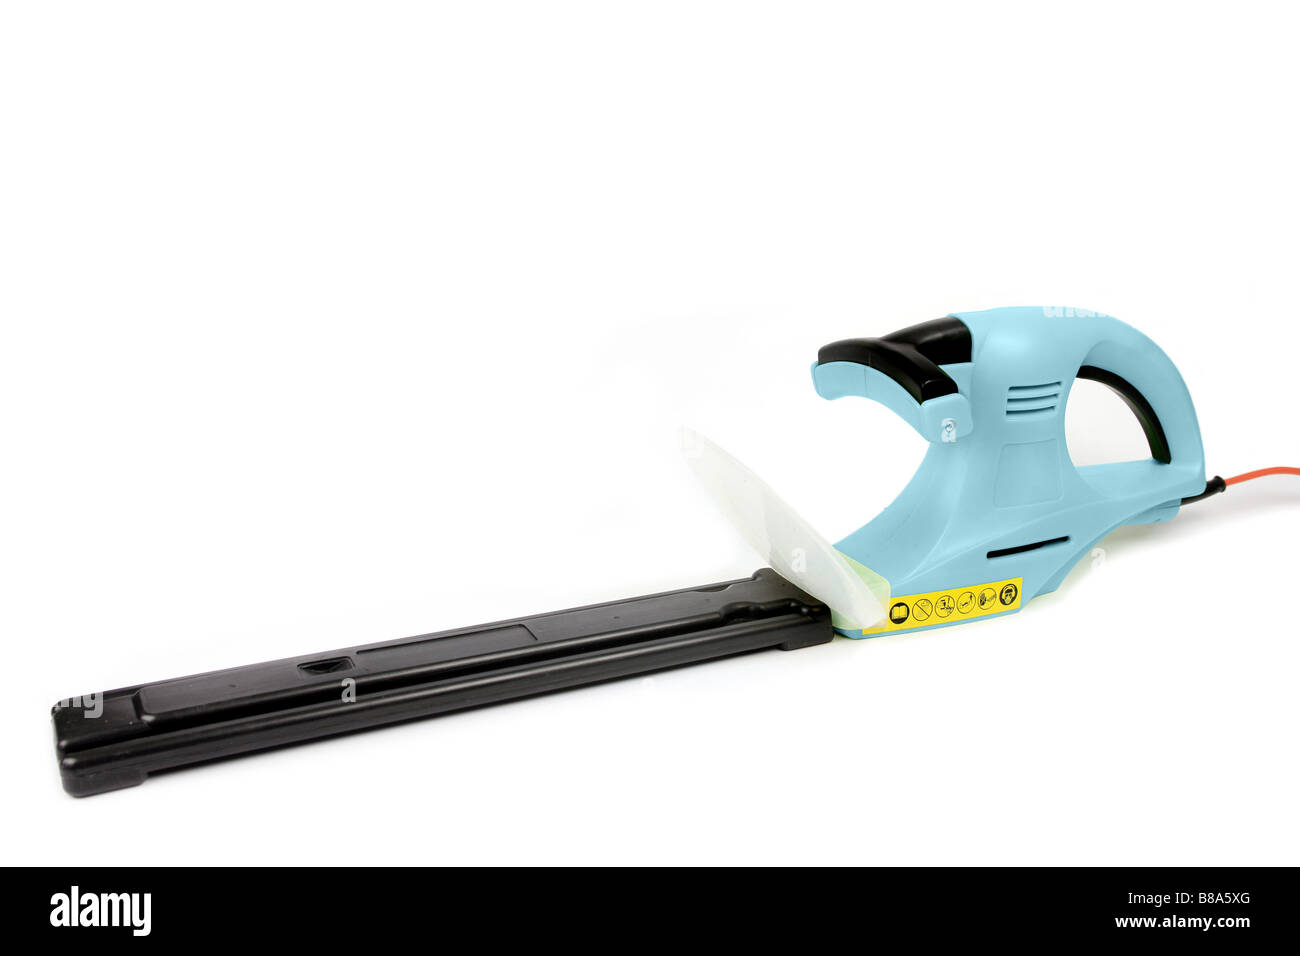 Electric garden hedge trimmer with its cutting blade sheath attached set against a white background - Stock Image